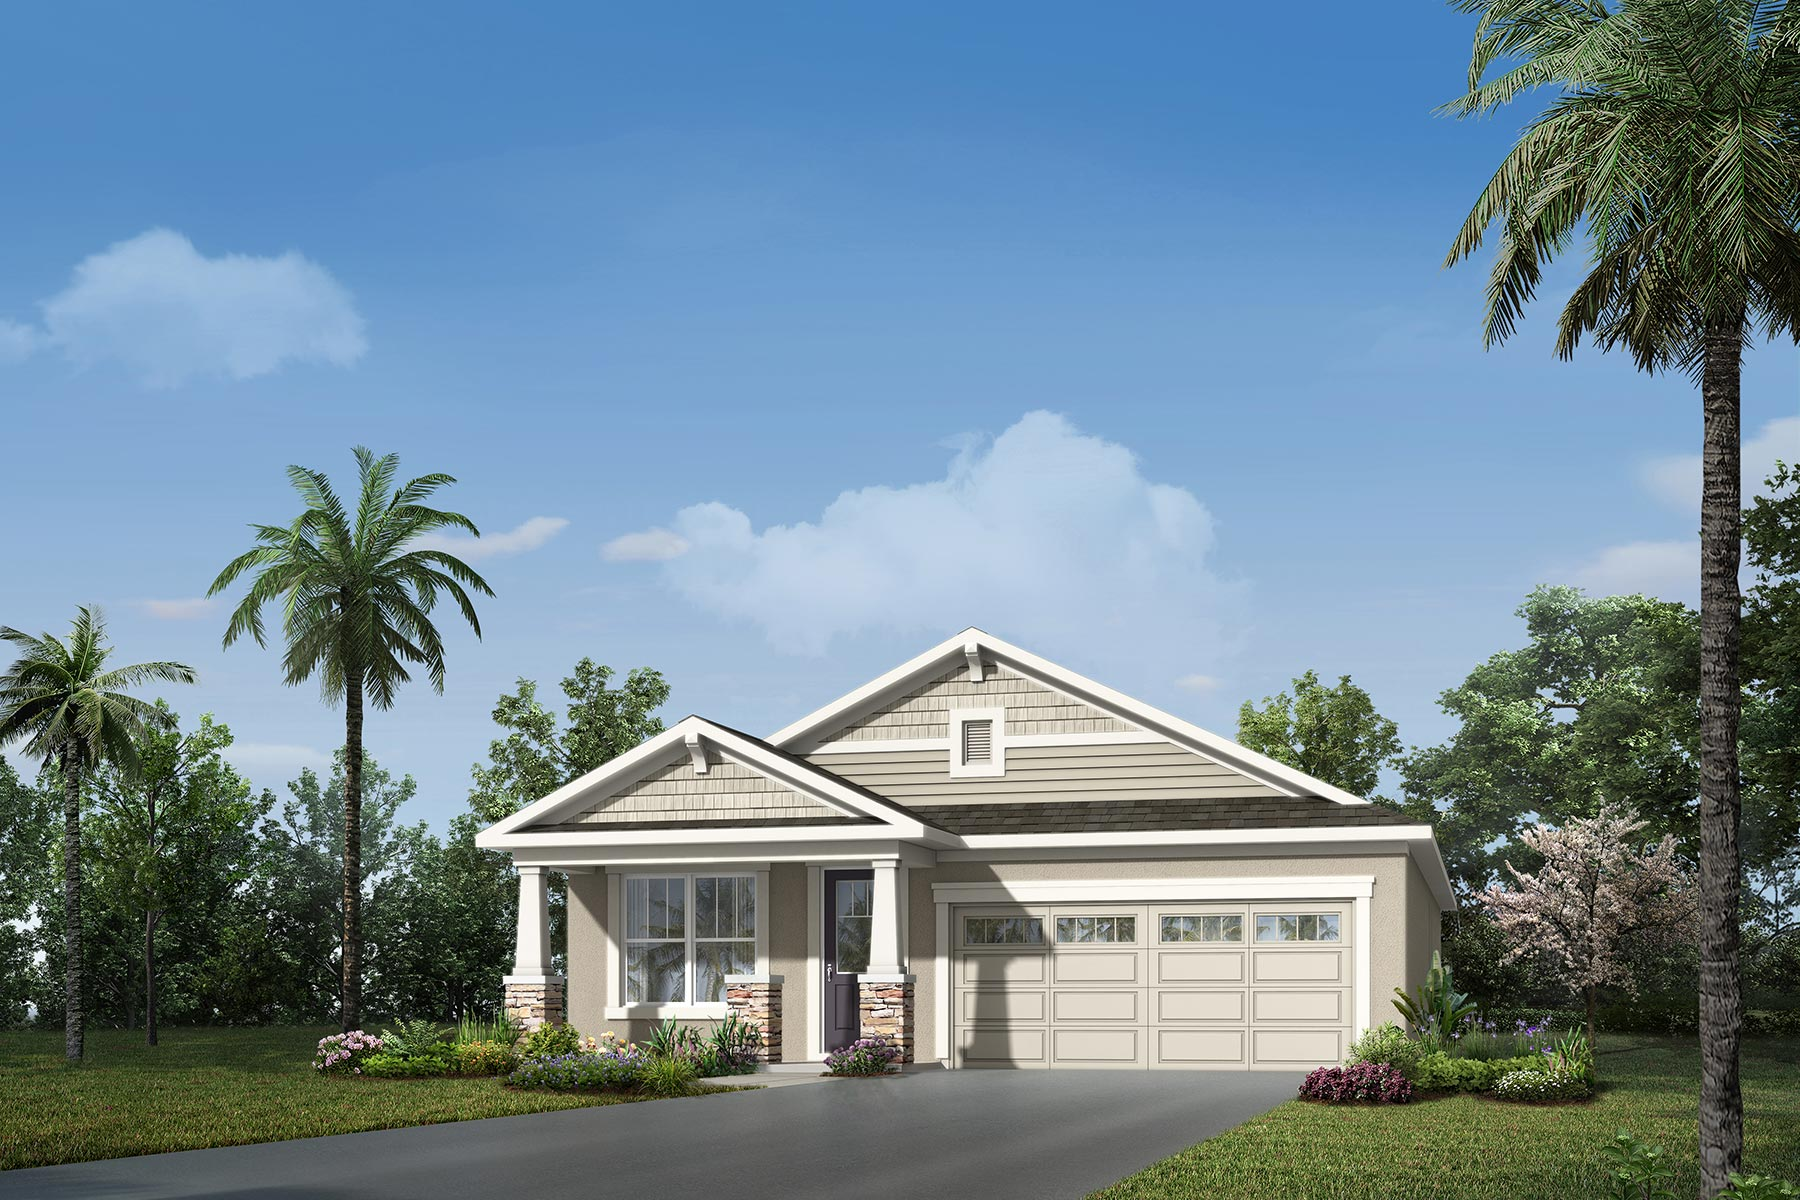 Cypress II Plan Elevation Front at Tohoqua in Kissimmee Florida by Mattamy Homes